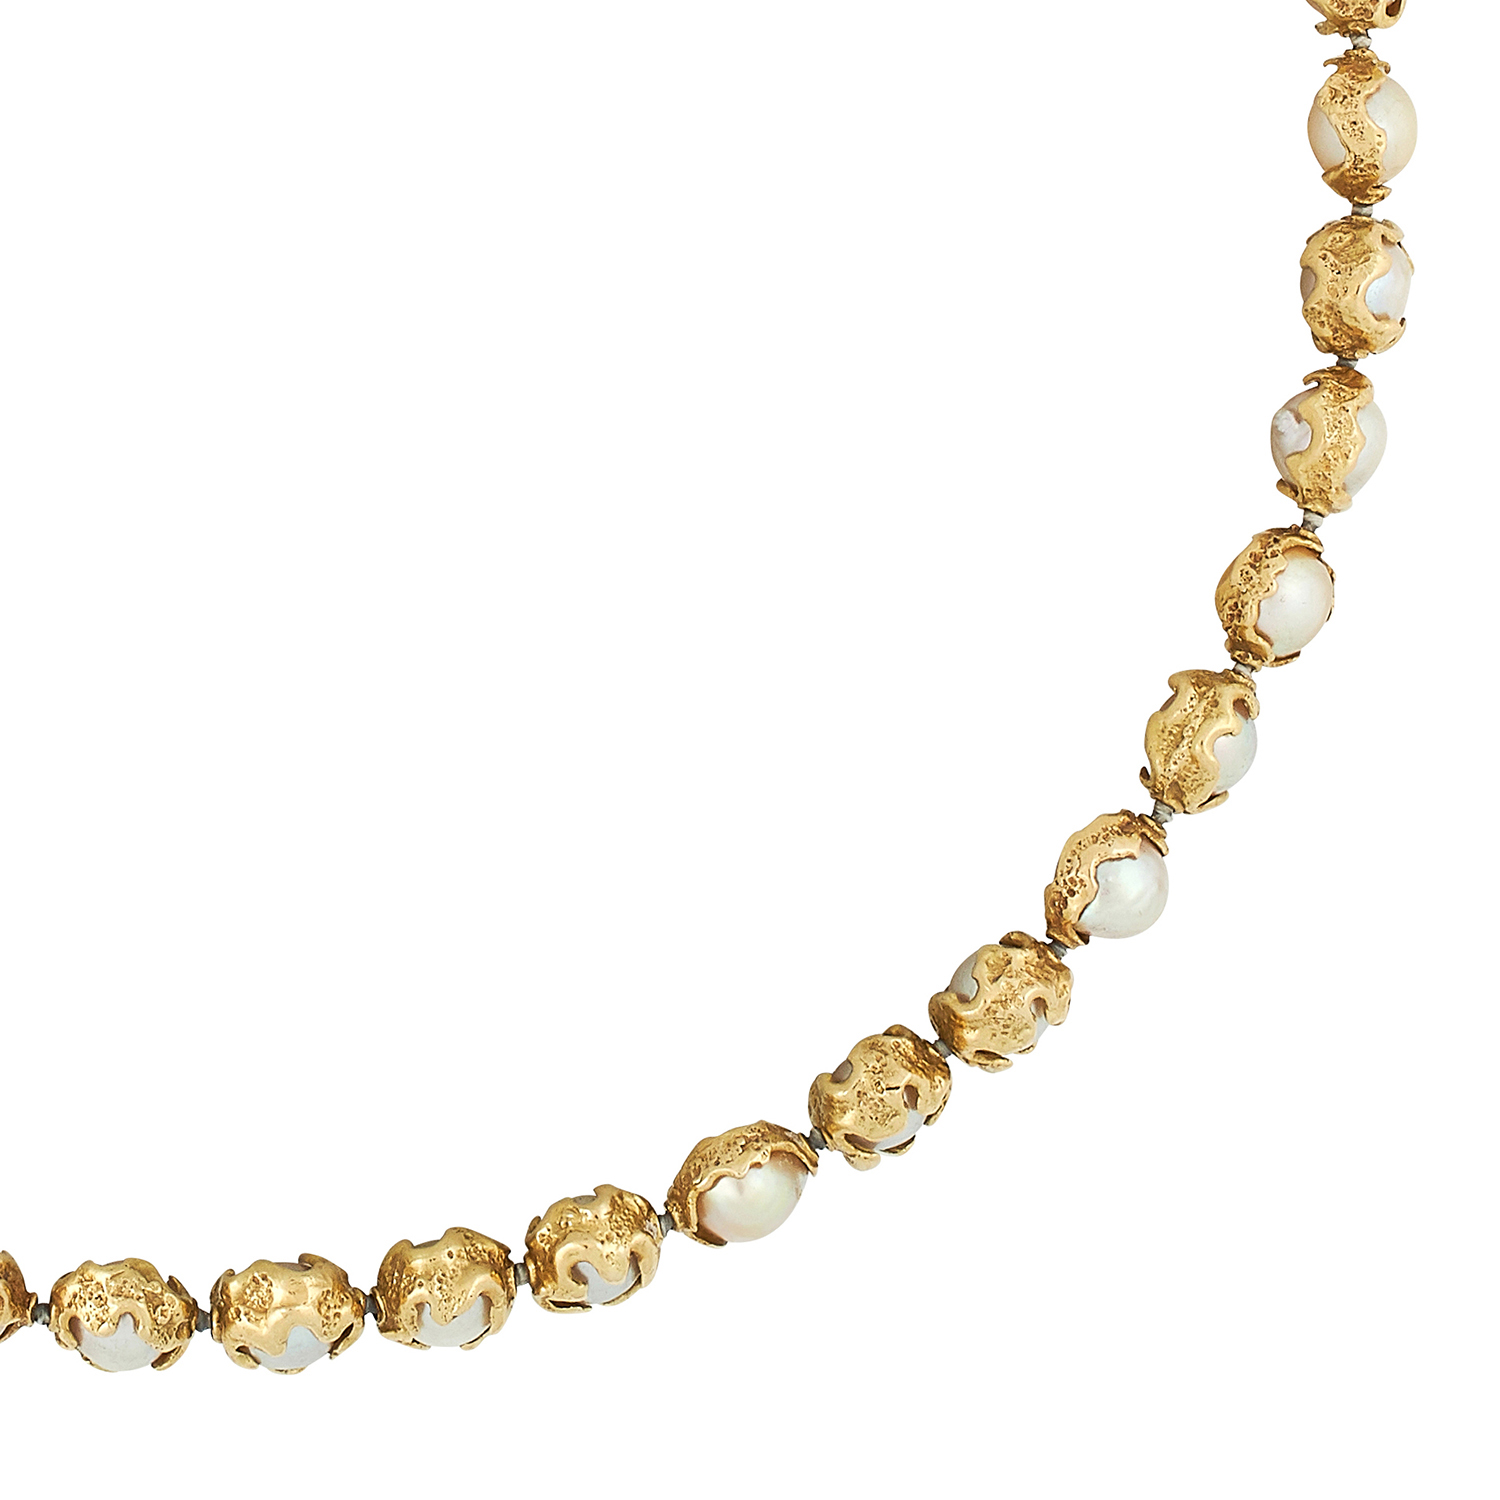 A CULTURED PEARL NECKLACE, CHARLES DE TEMPLE 1978 formed of a single row of pearls of 7.5-8.5mm in - Image 2 of 2